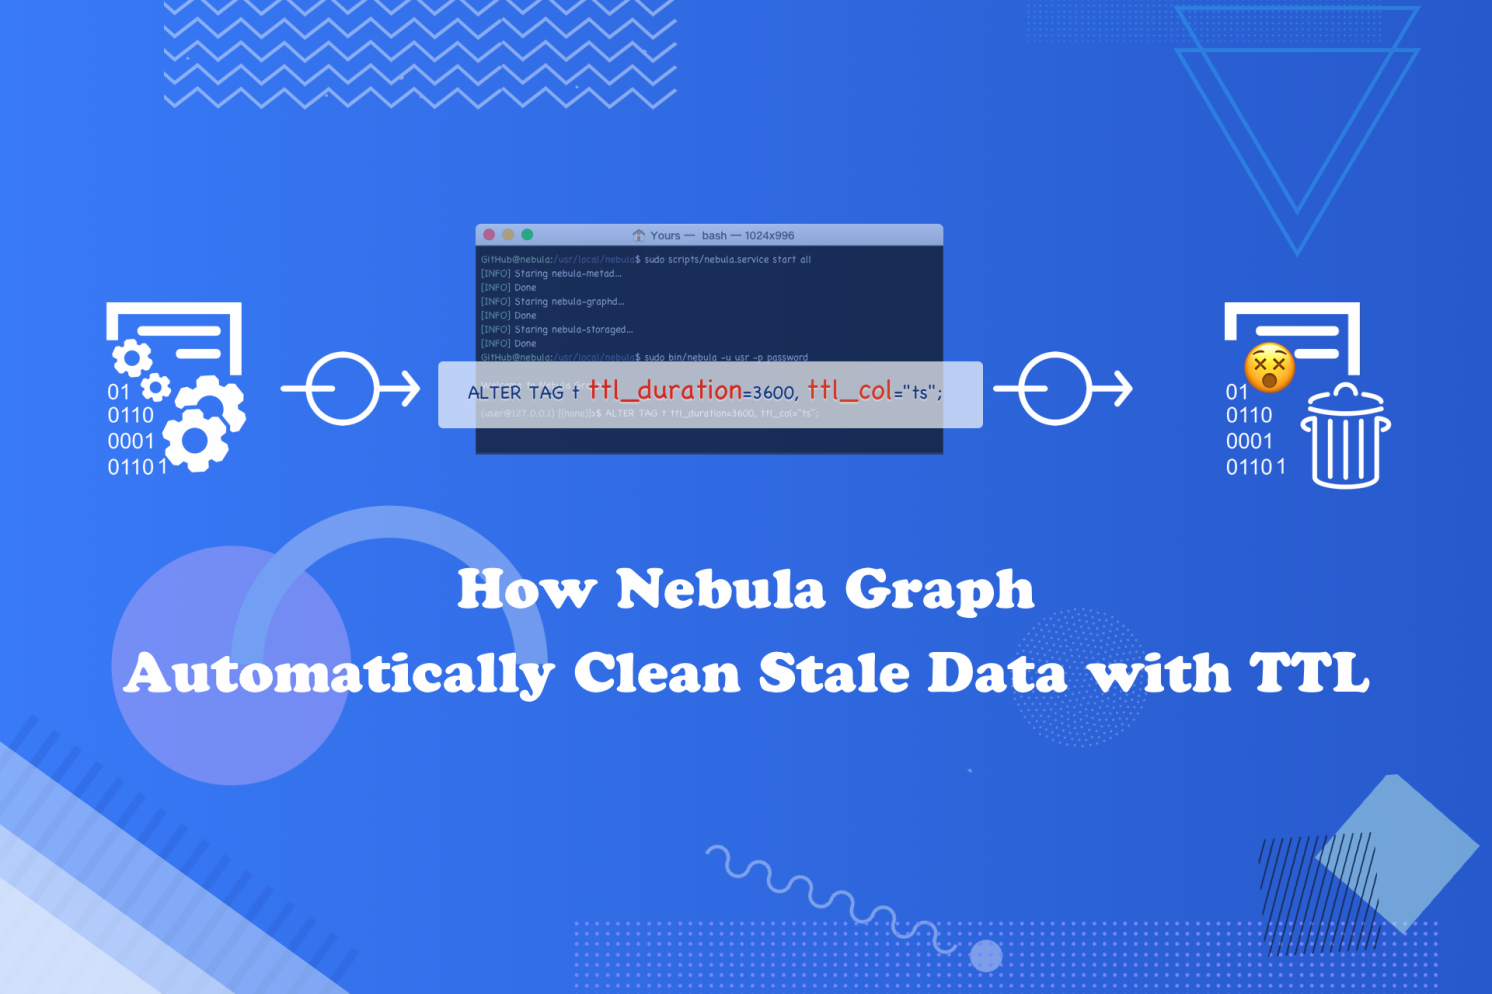 How Nebula Graph Automatically Cleans Stale Data with TTL